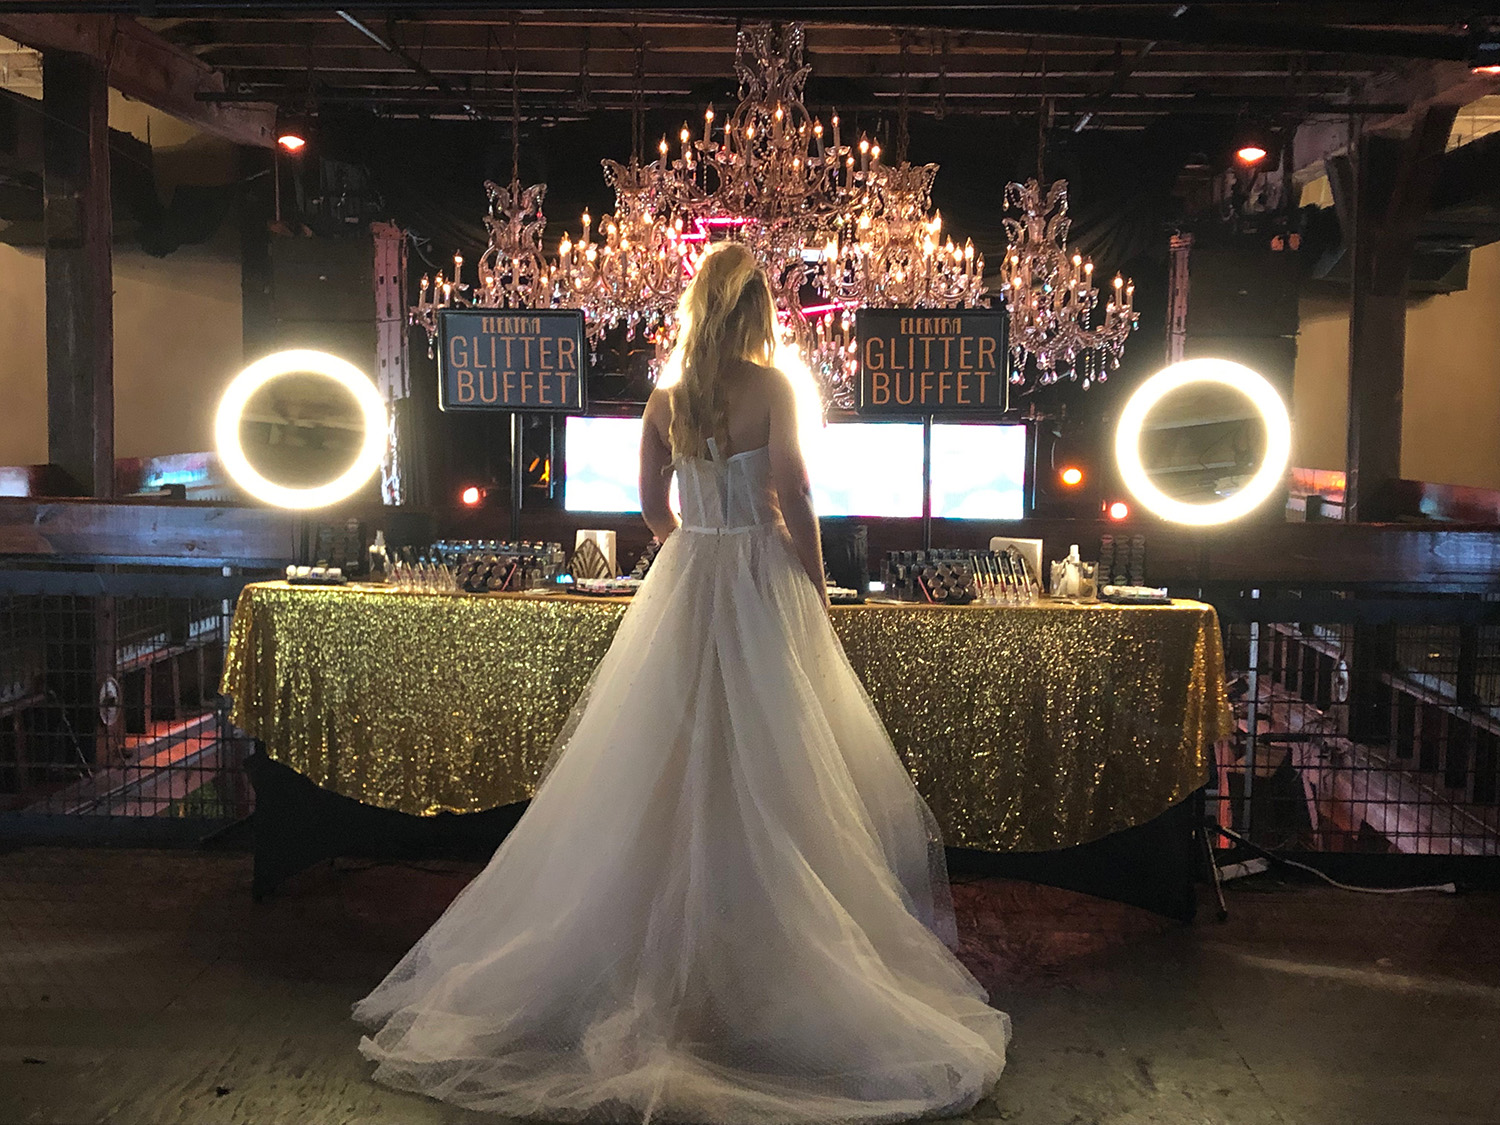 A bride browses the Glitter Buffet Experience by Elektra Cosmetics. Photo: Danielle Smith